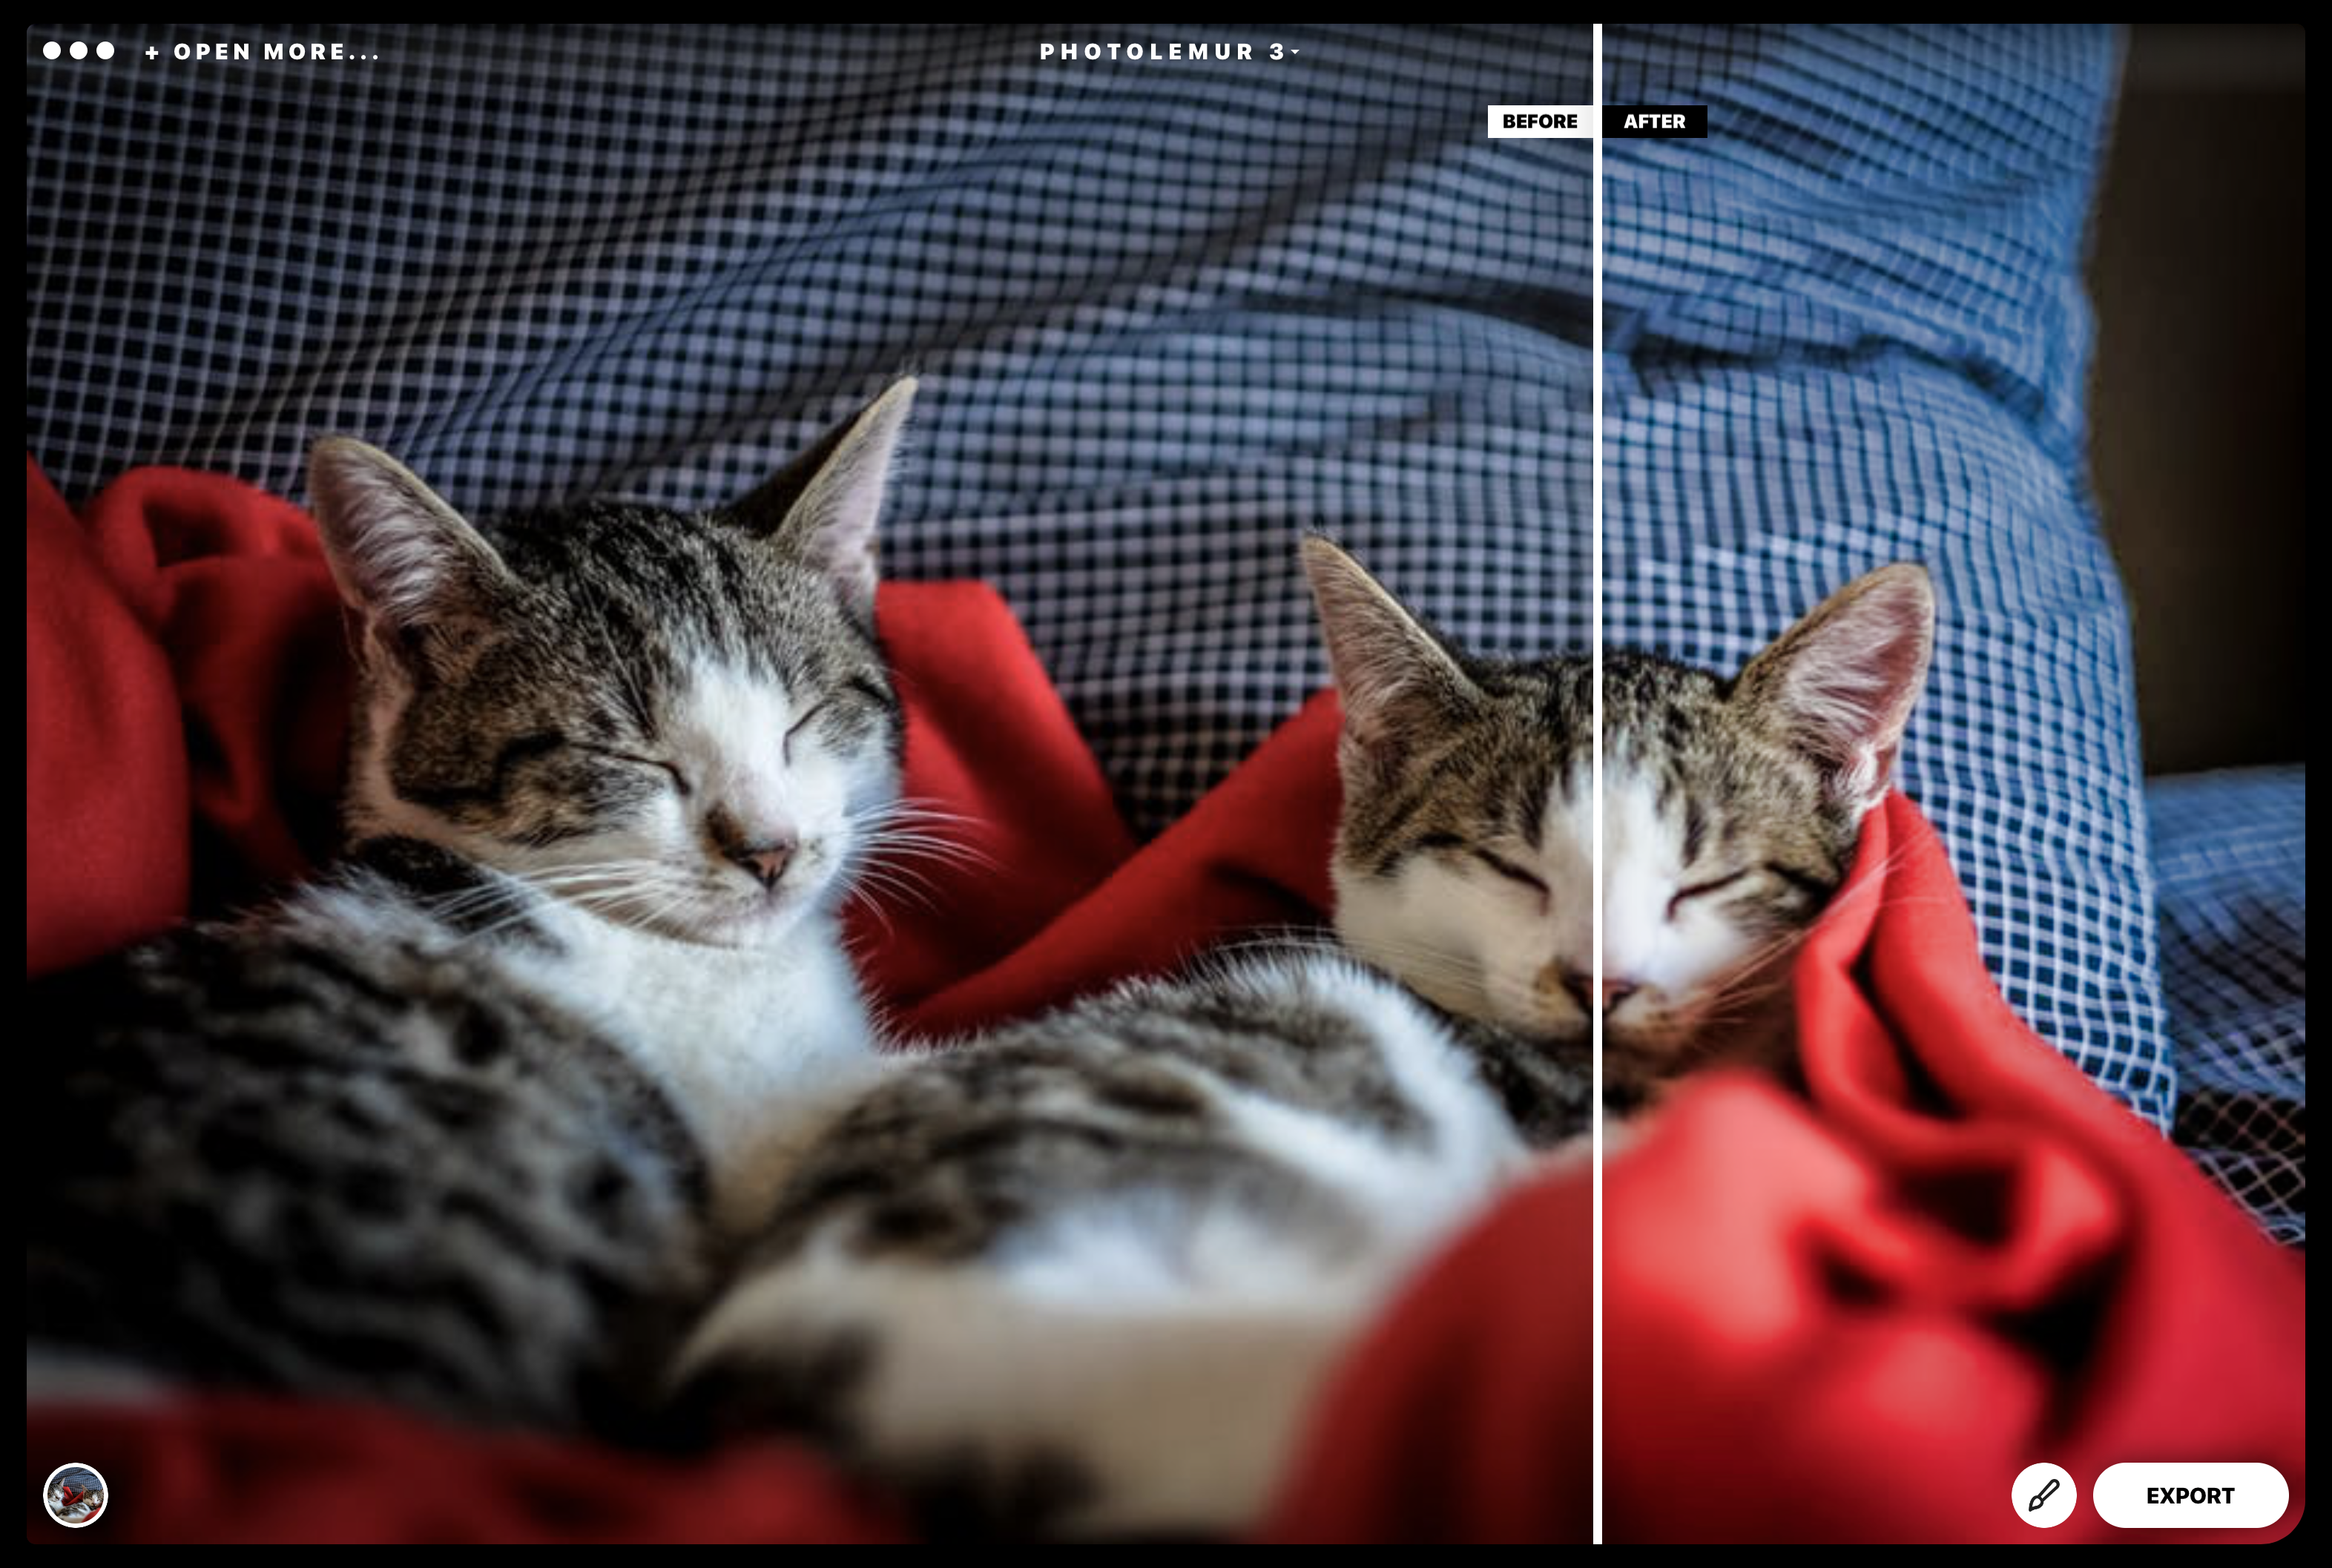 Enhancing your images with photolemur